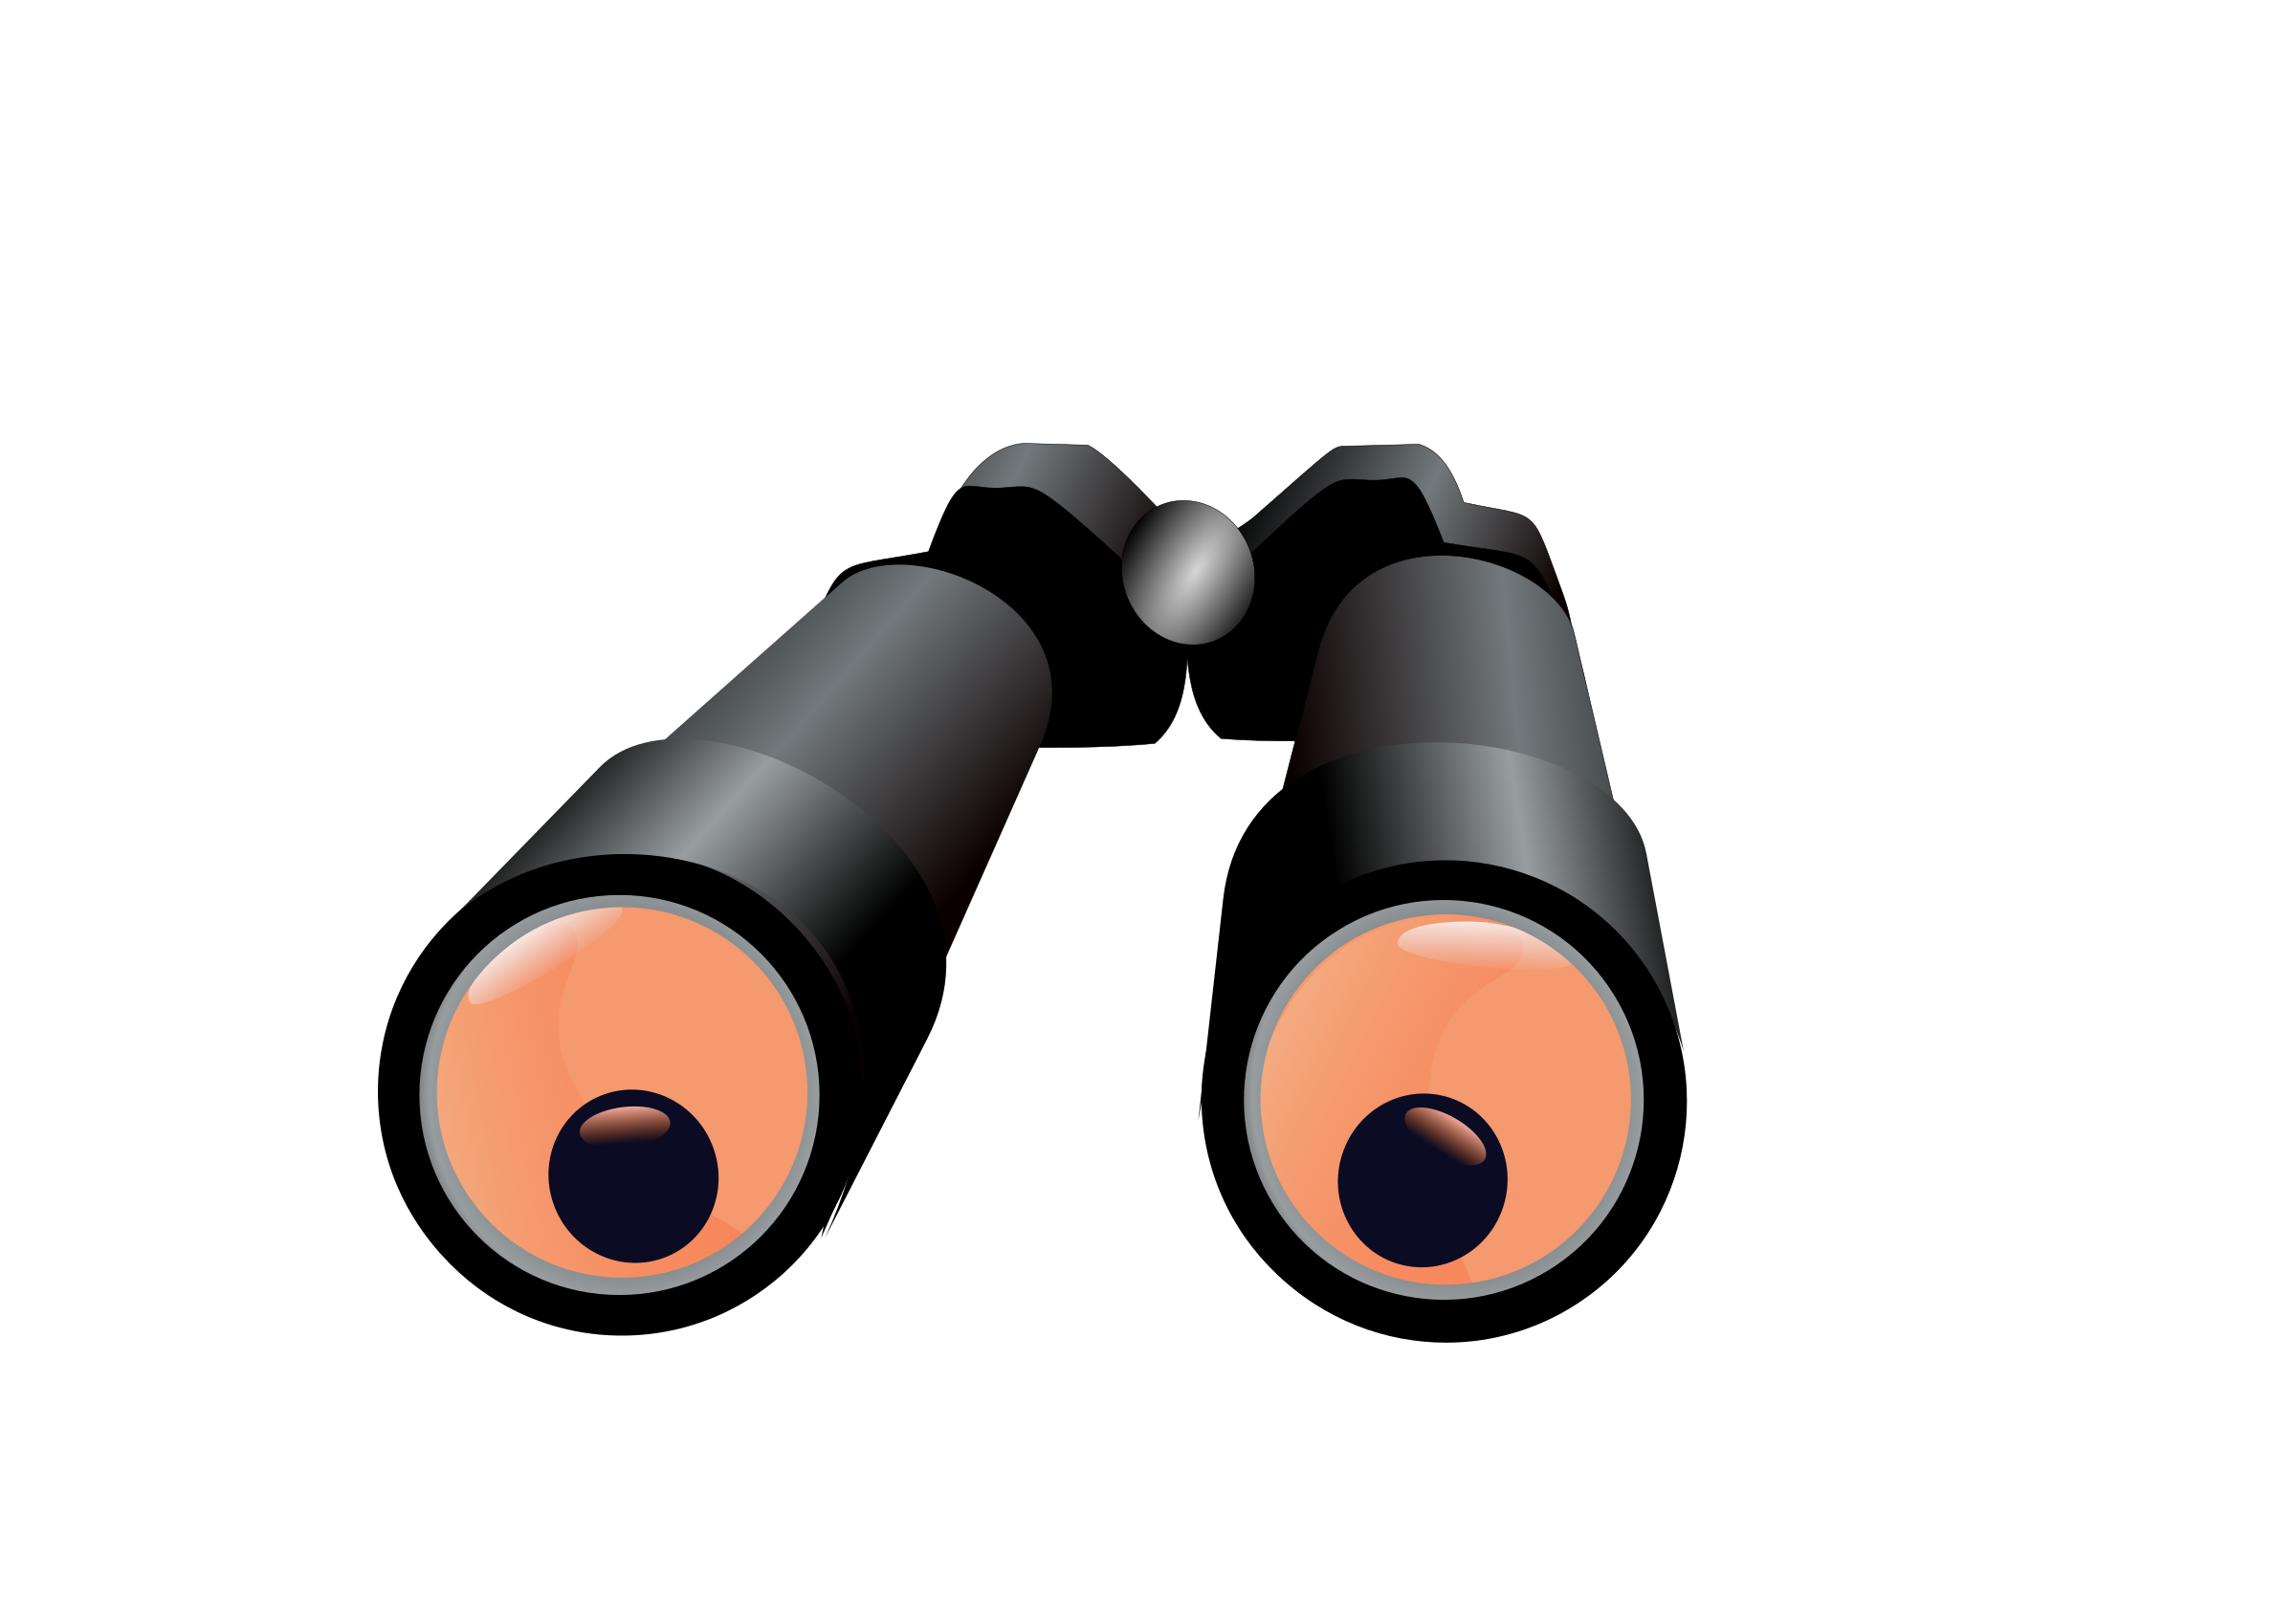 Clipart - Binoculars with spying eyes